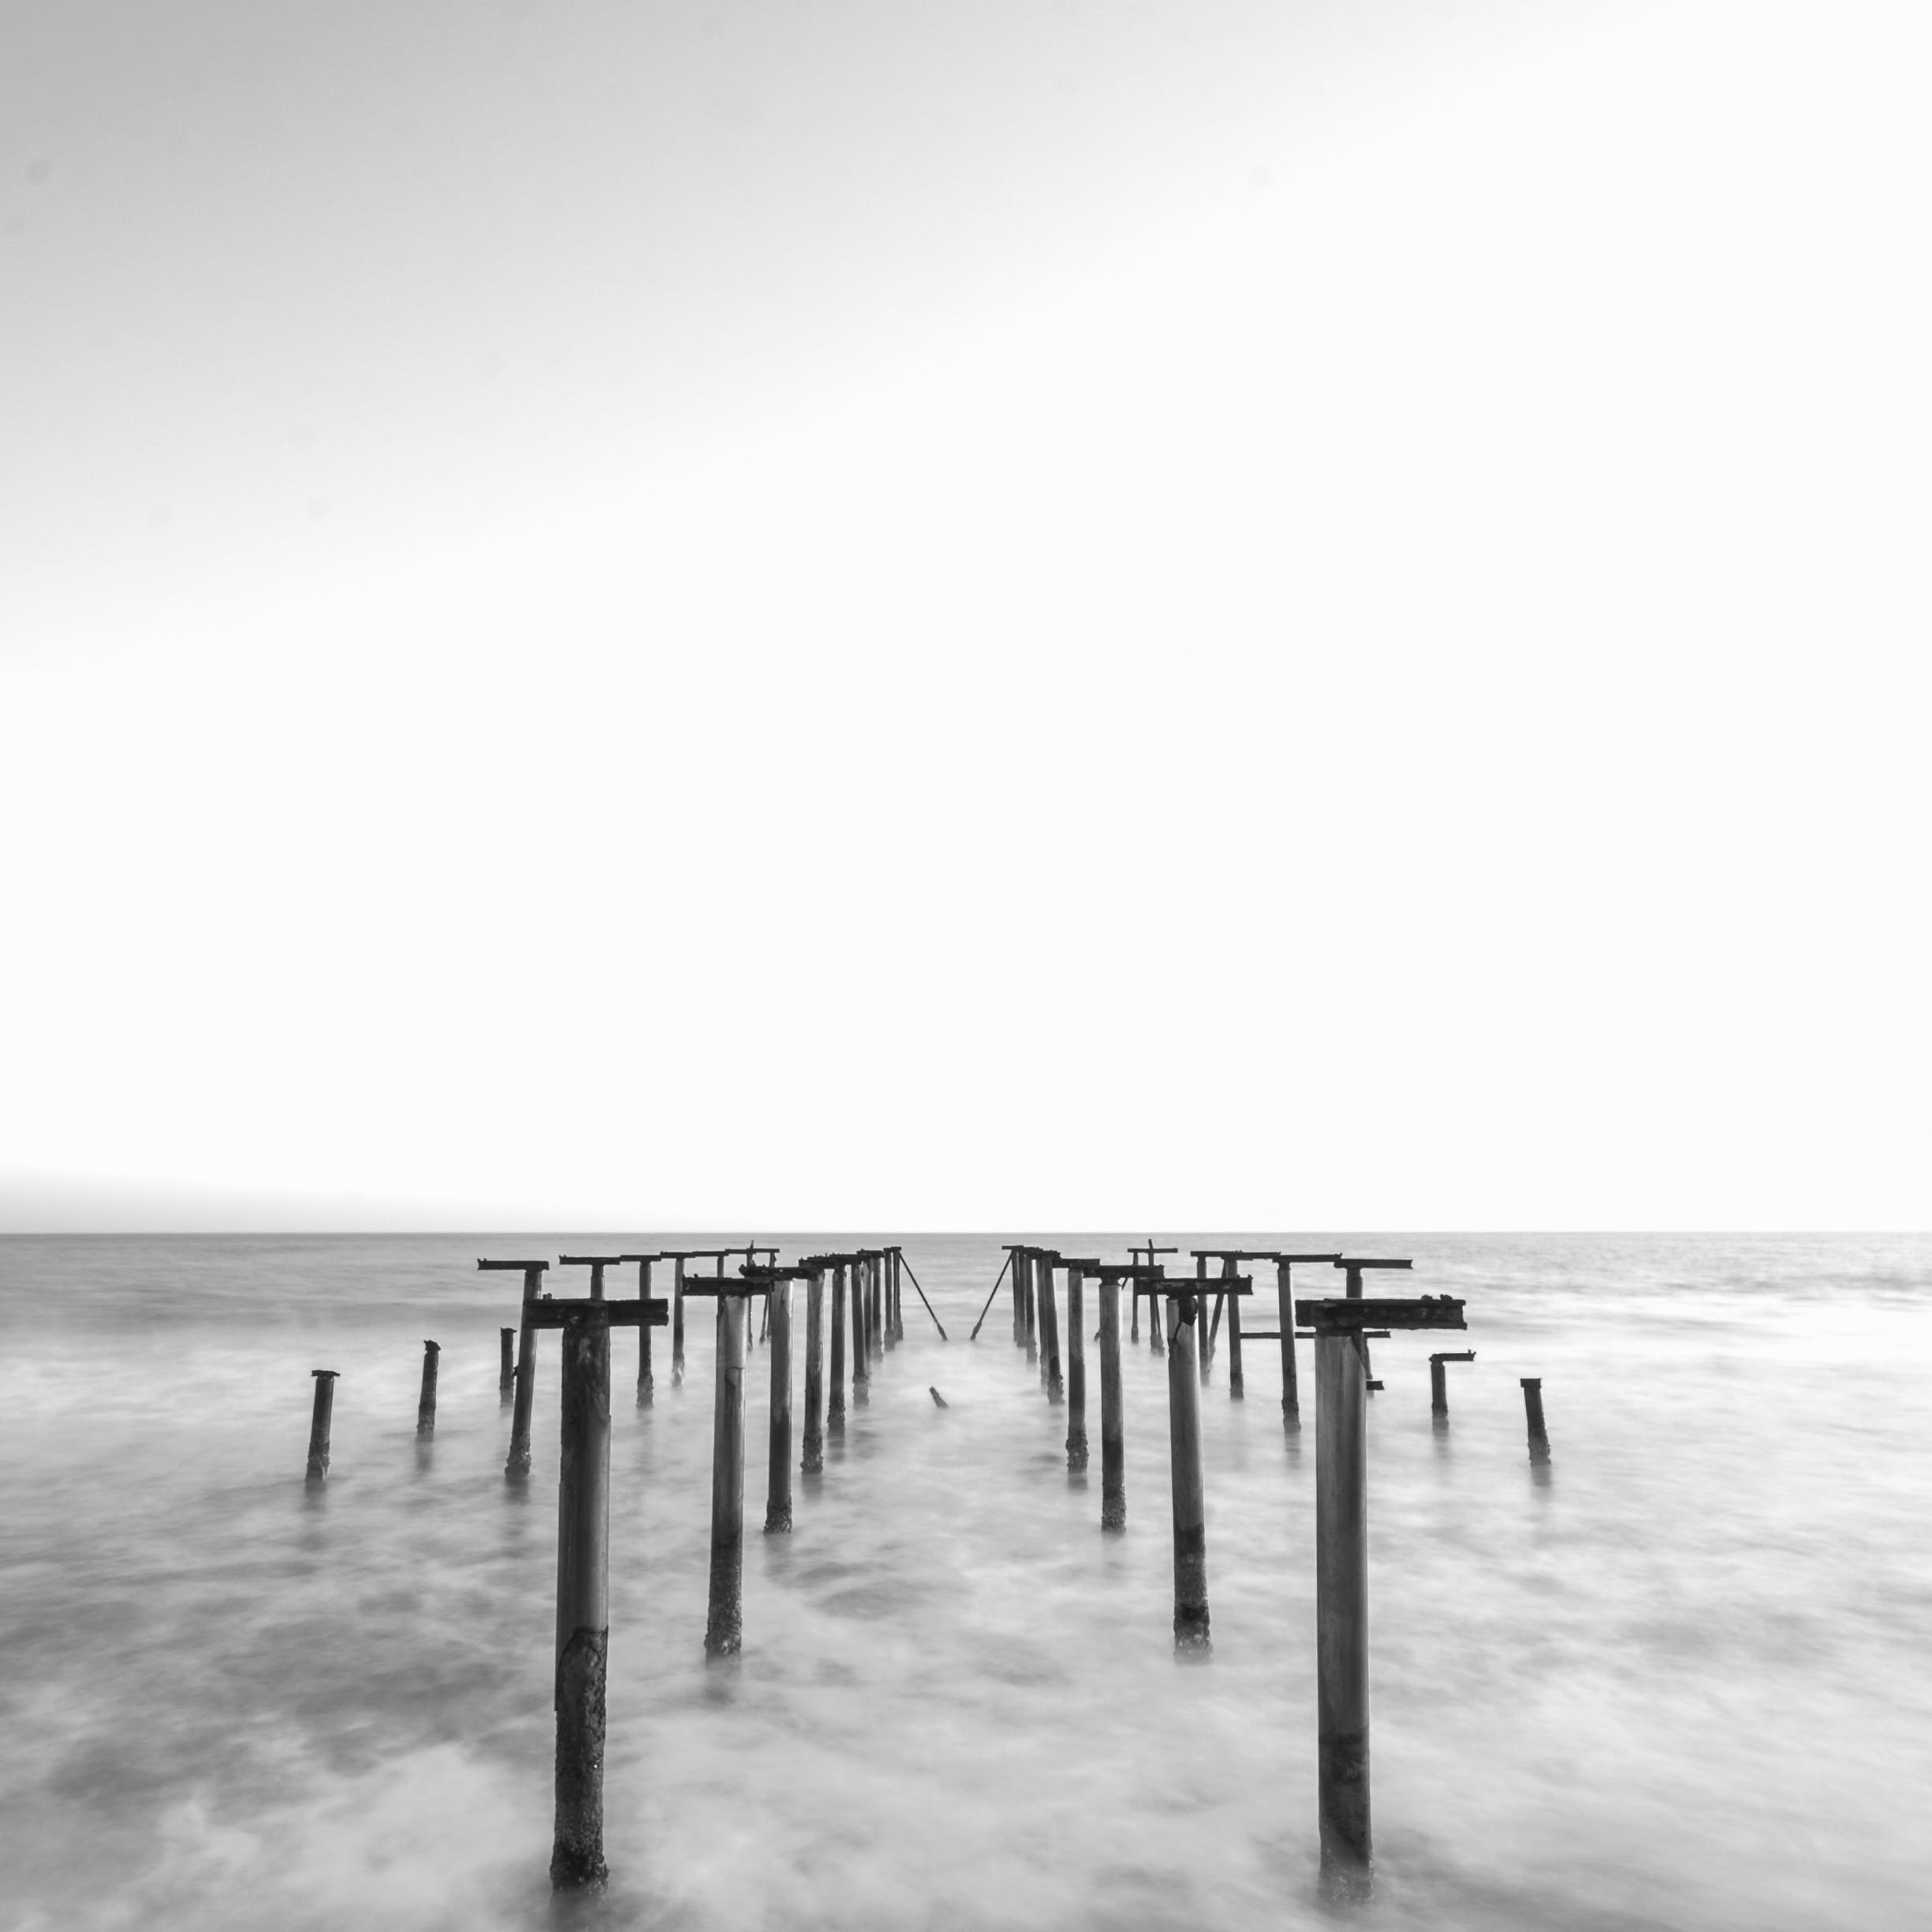 Free stock photo of jetty, sea, black-and-white, dawn